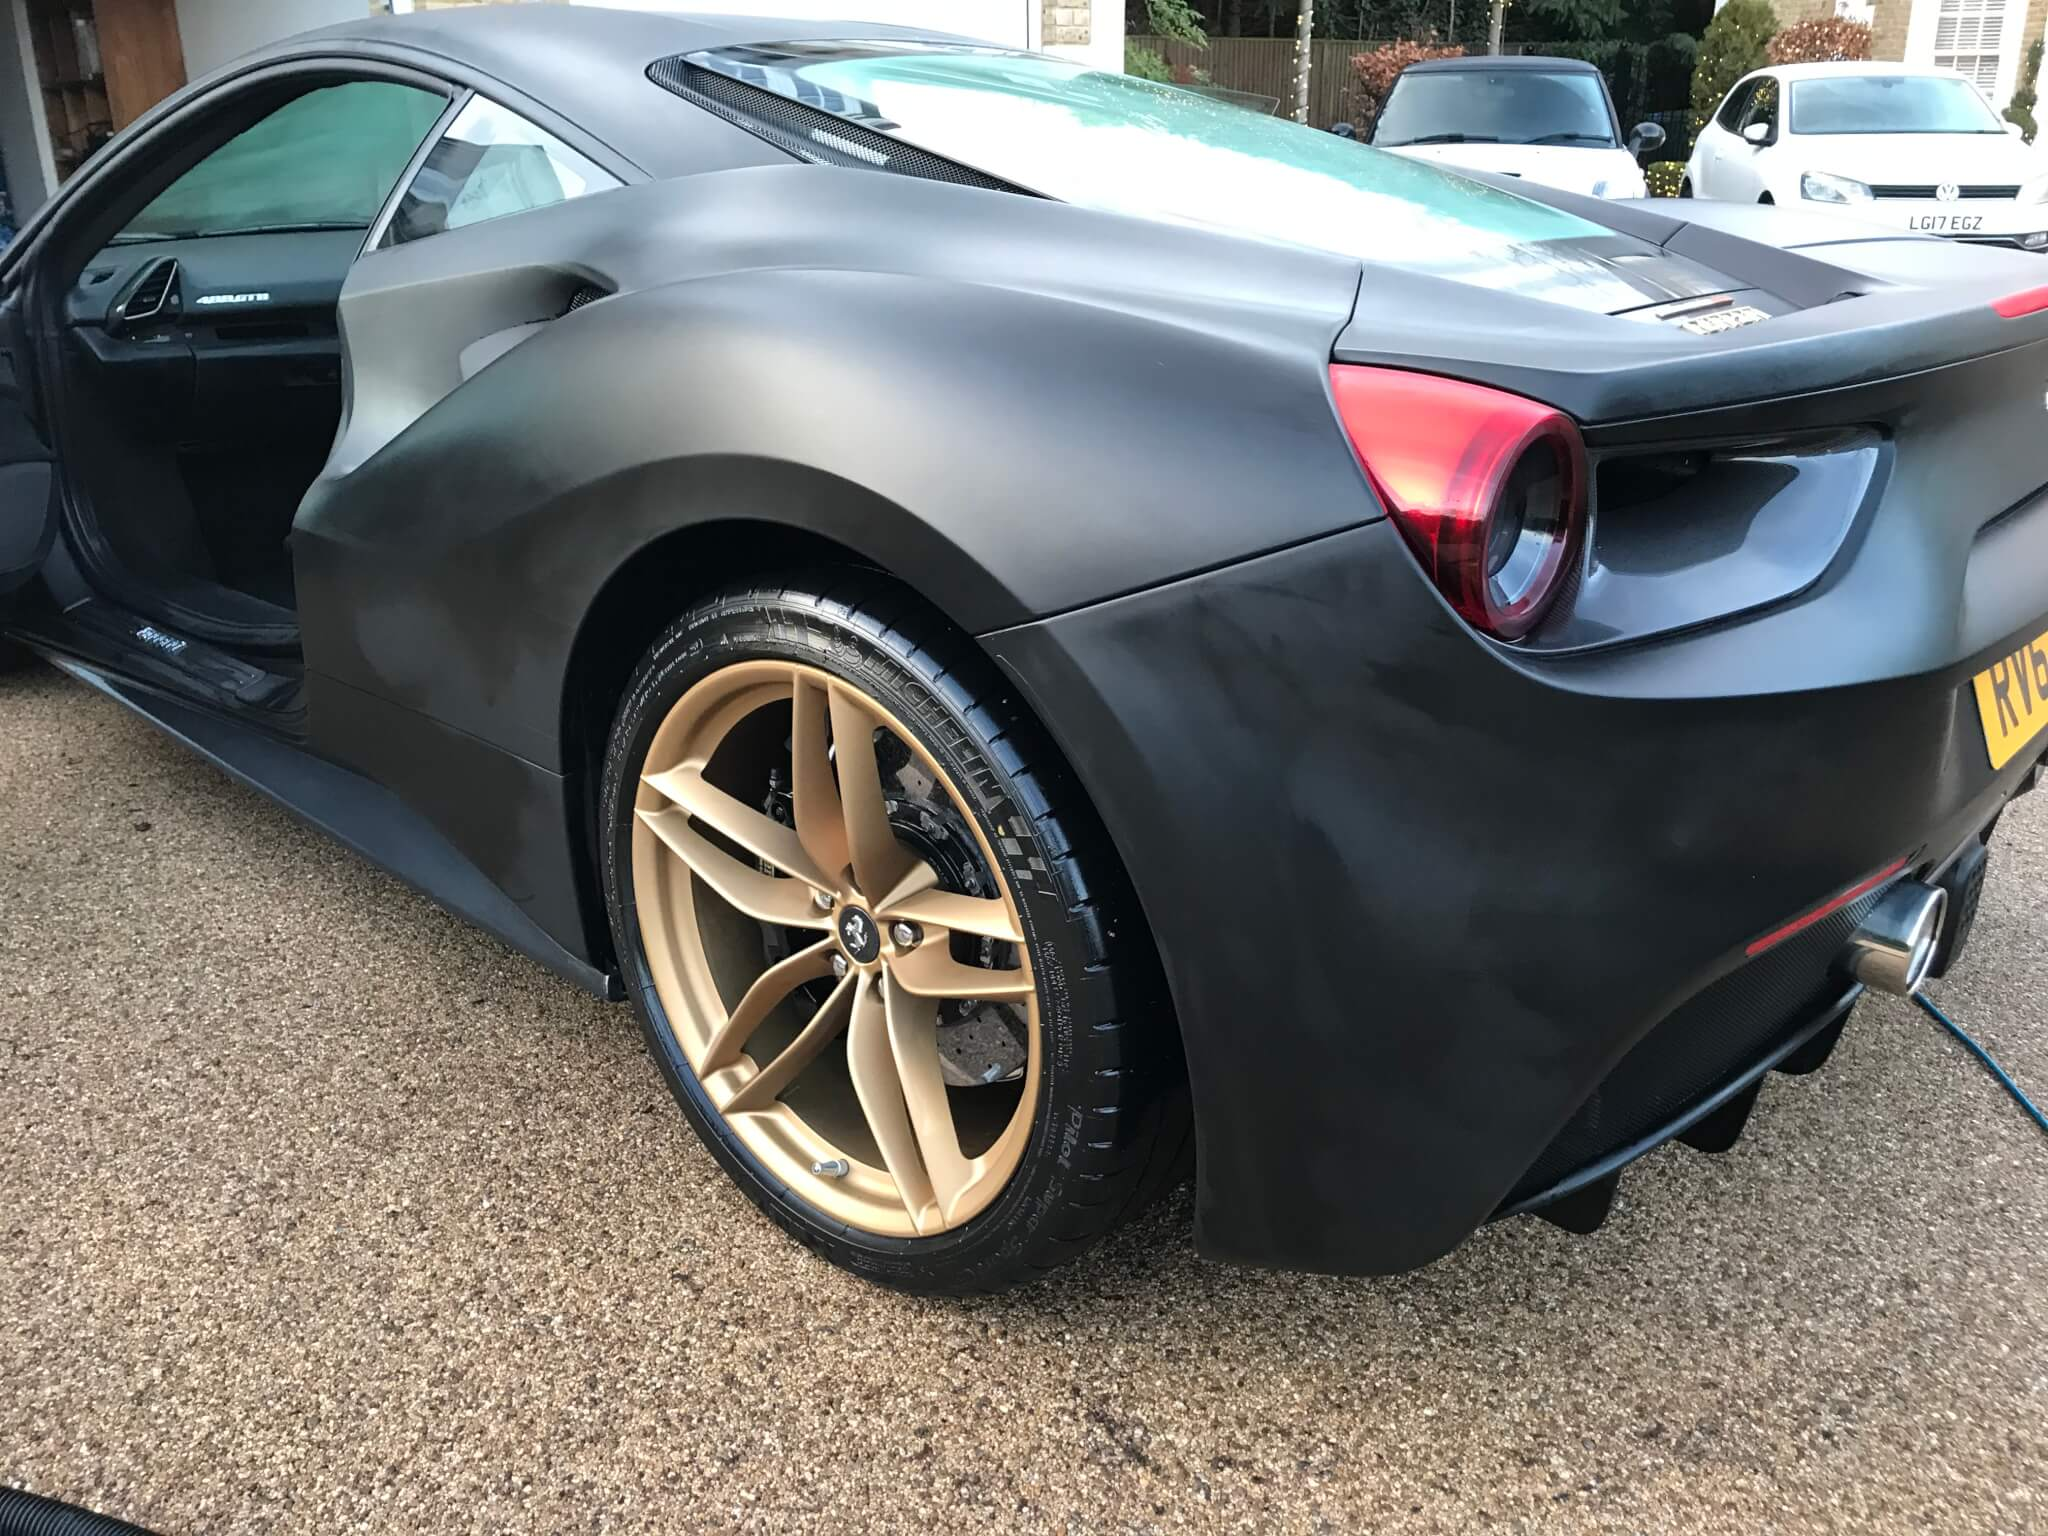 Matte paintwork on Ferrari 488